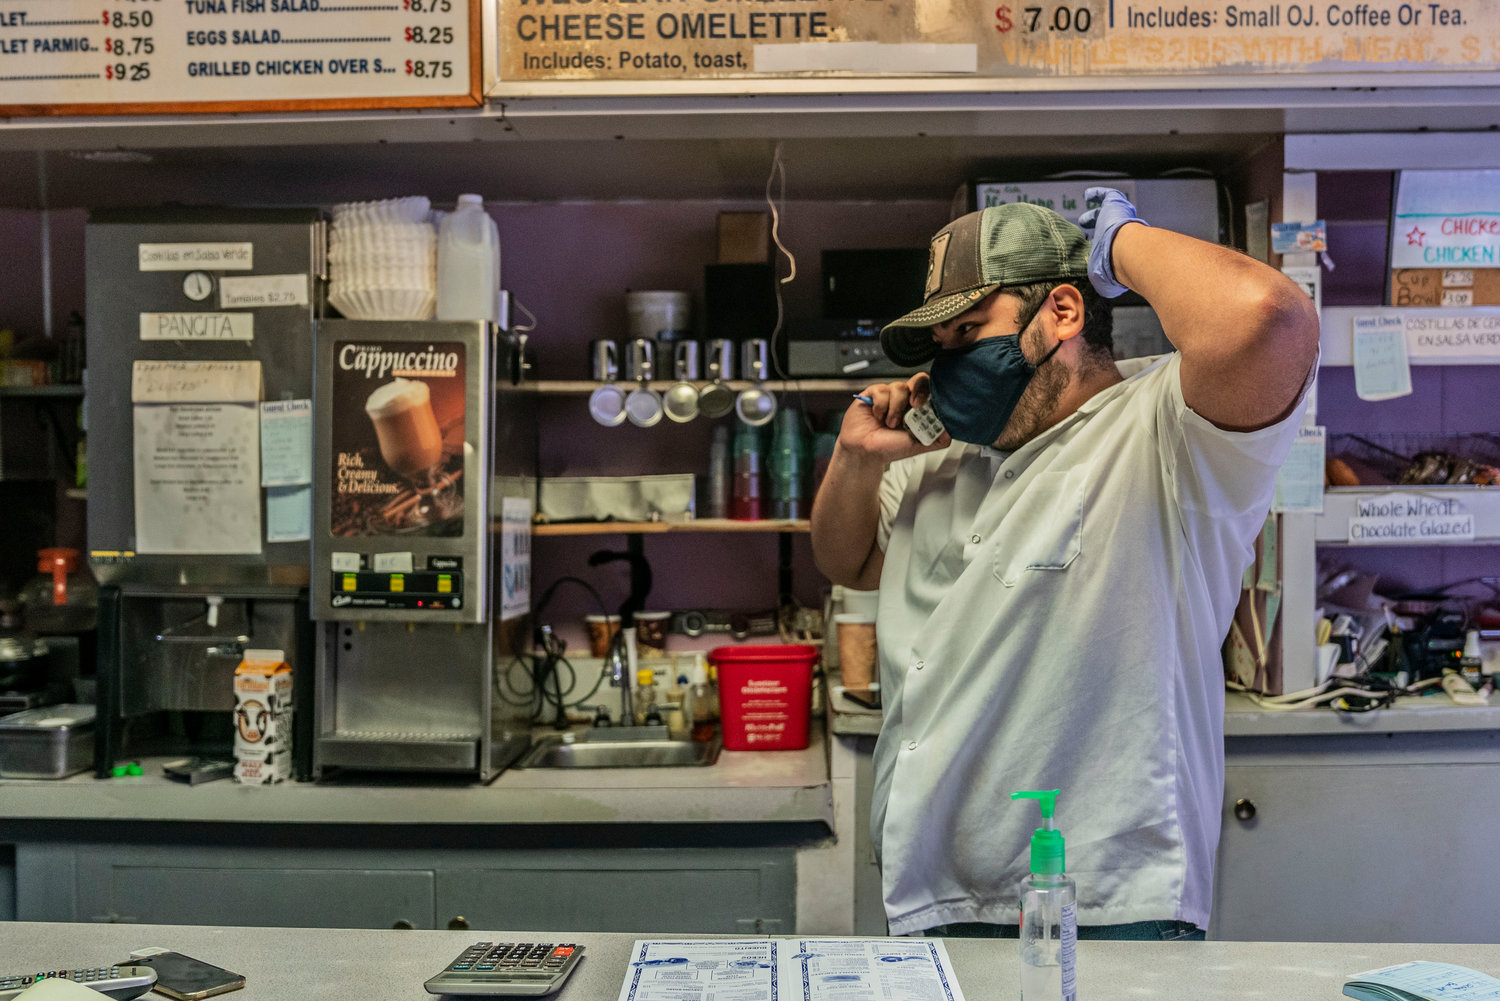 Seven months of the pandemic have taken a toll on the Kingsbridge Donut Shop. Rent is just too high, says owner Fernando Rodríguez — something they struggled to pay even before the pandemic. Now, with months of lost revenue, Rodriguez believes there's just no way to recover.